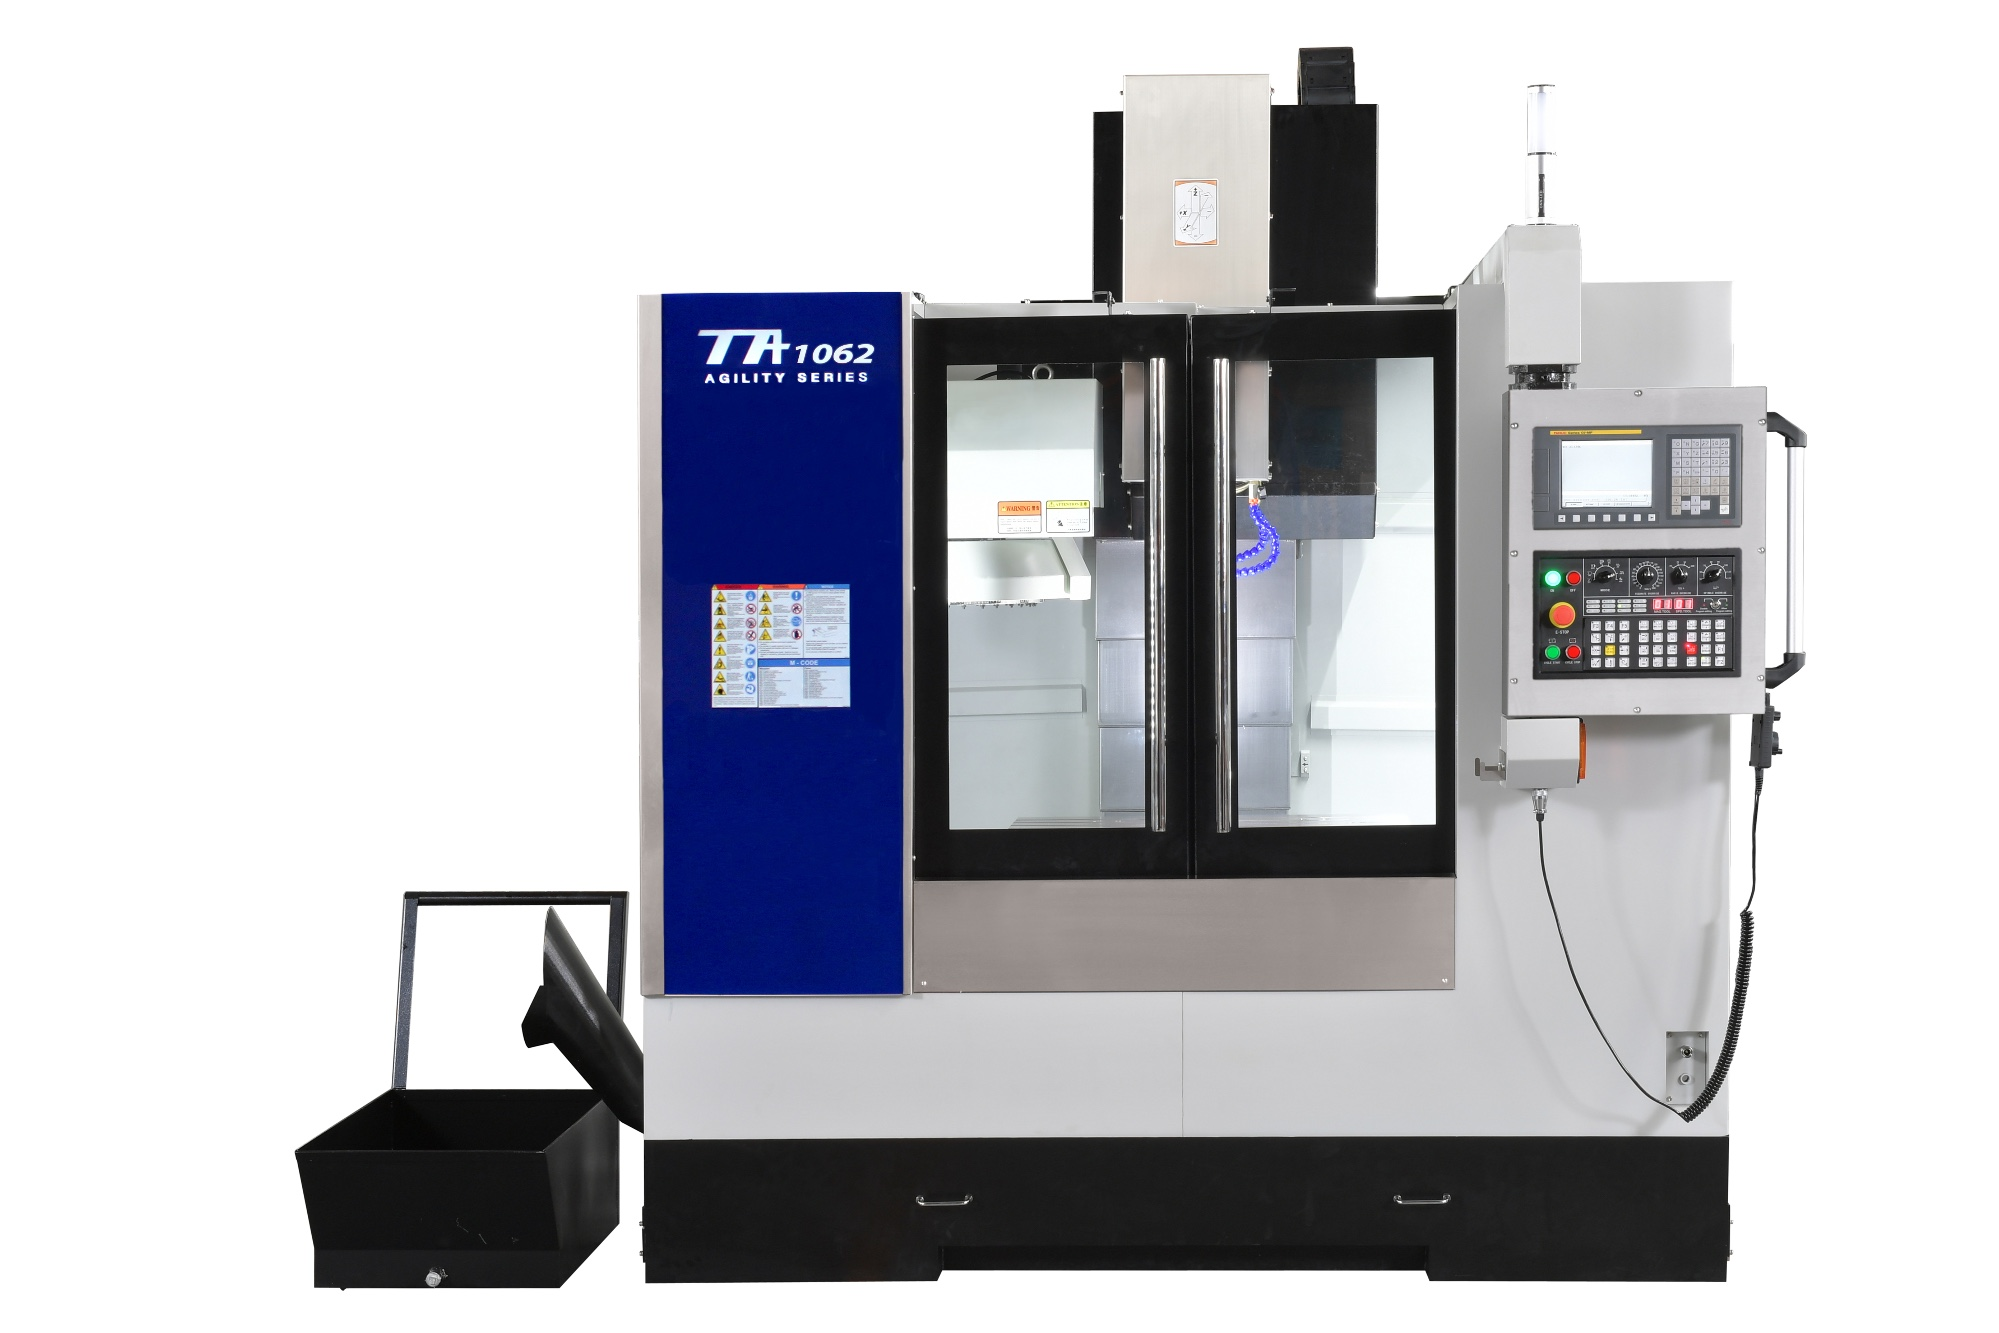 TA-1062 Entry Customizable Cnc Vertical Machine Center Manufacturers, TA-1062 Entry Customizable Cnc Vertical Machine Center Factory, Supply TA-1062 Entry Customizable Cnc Vertical Machine Center